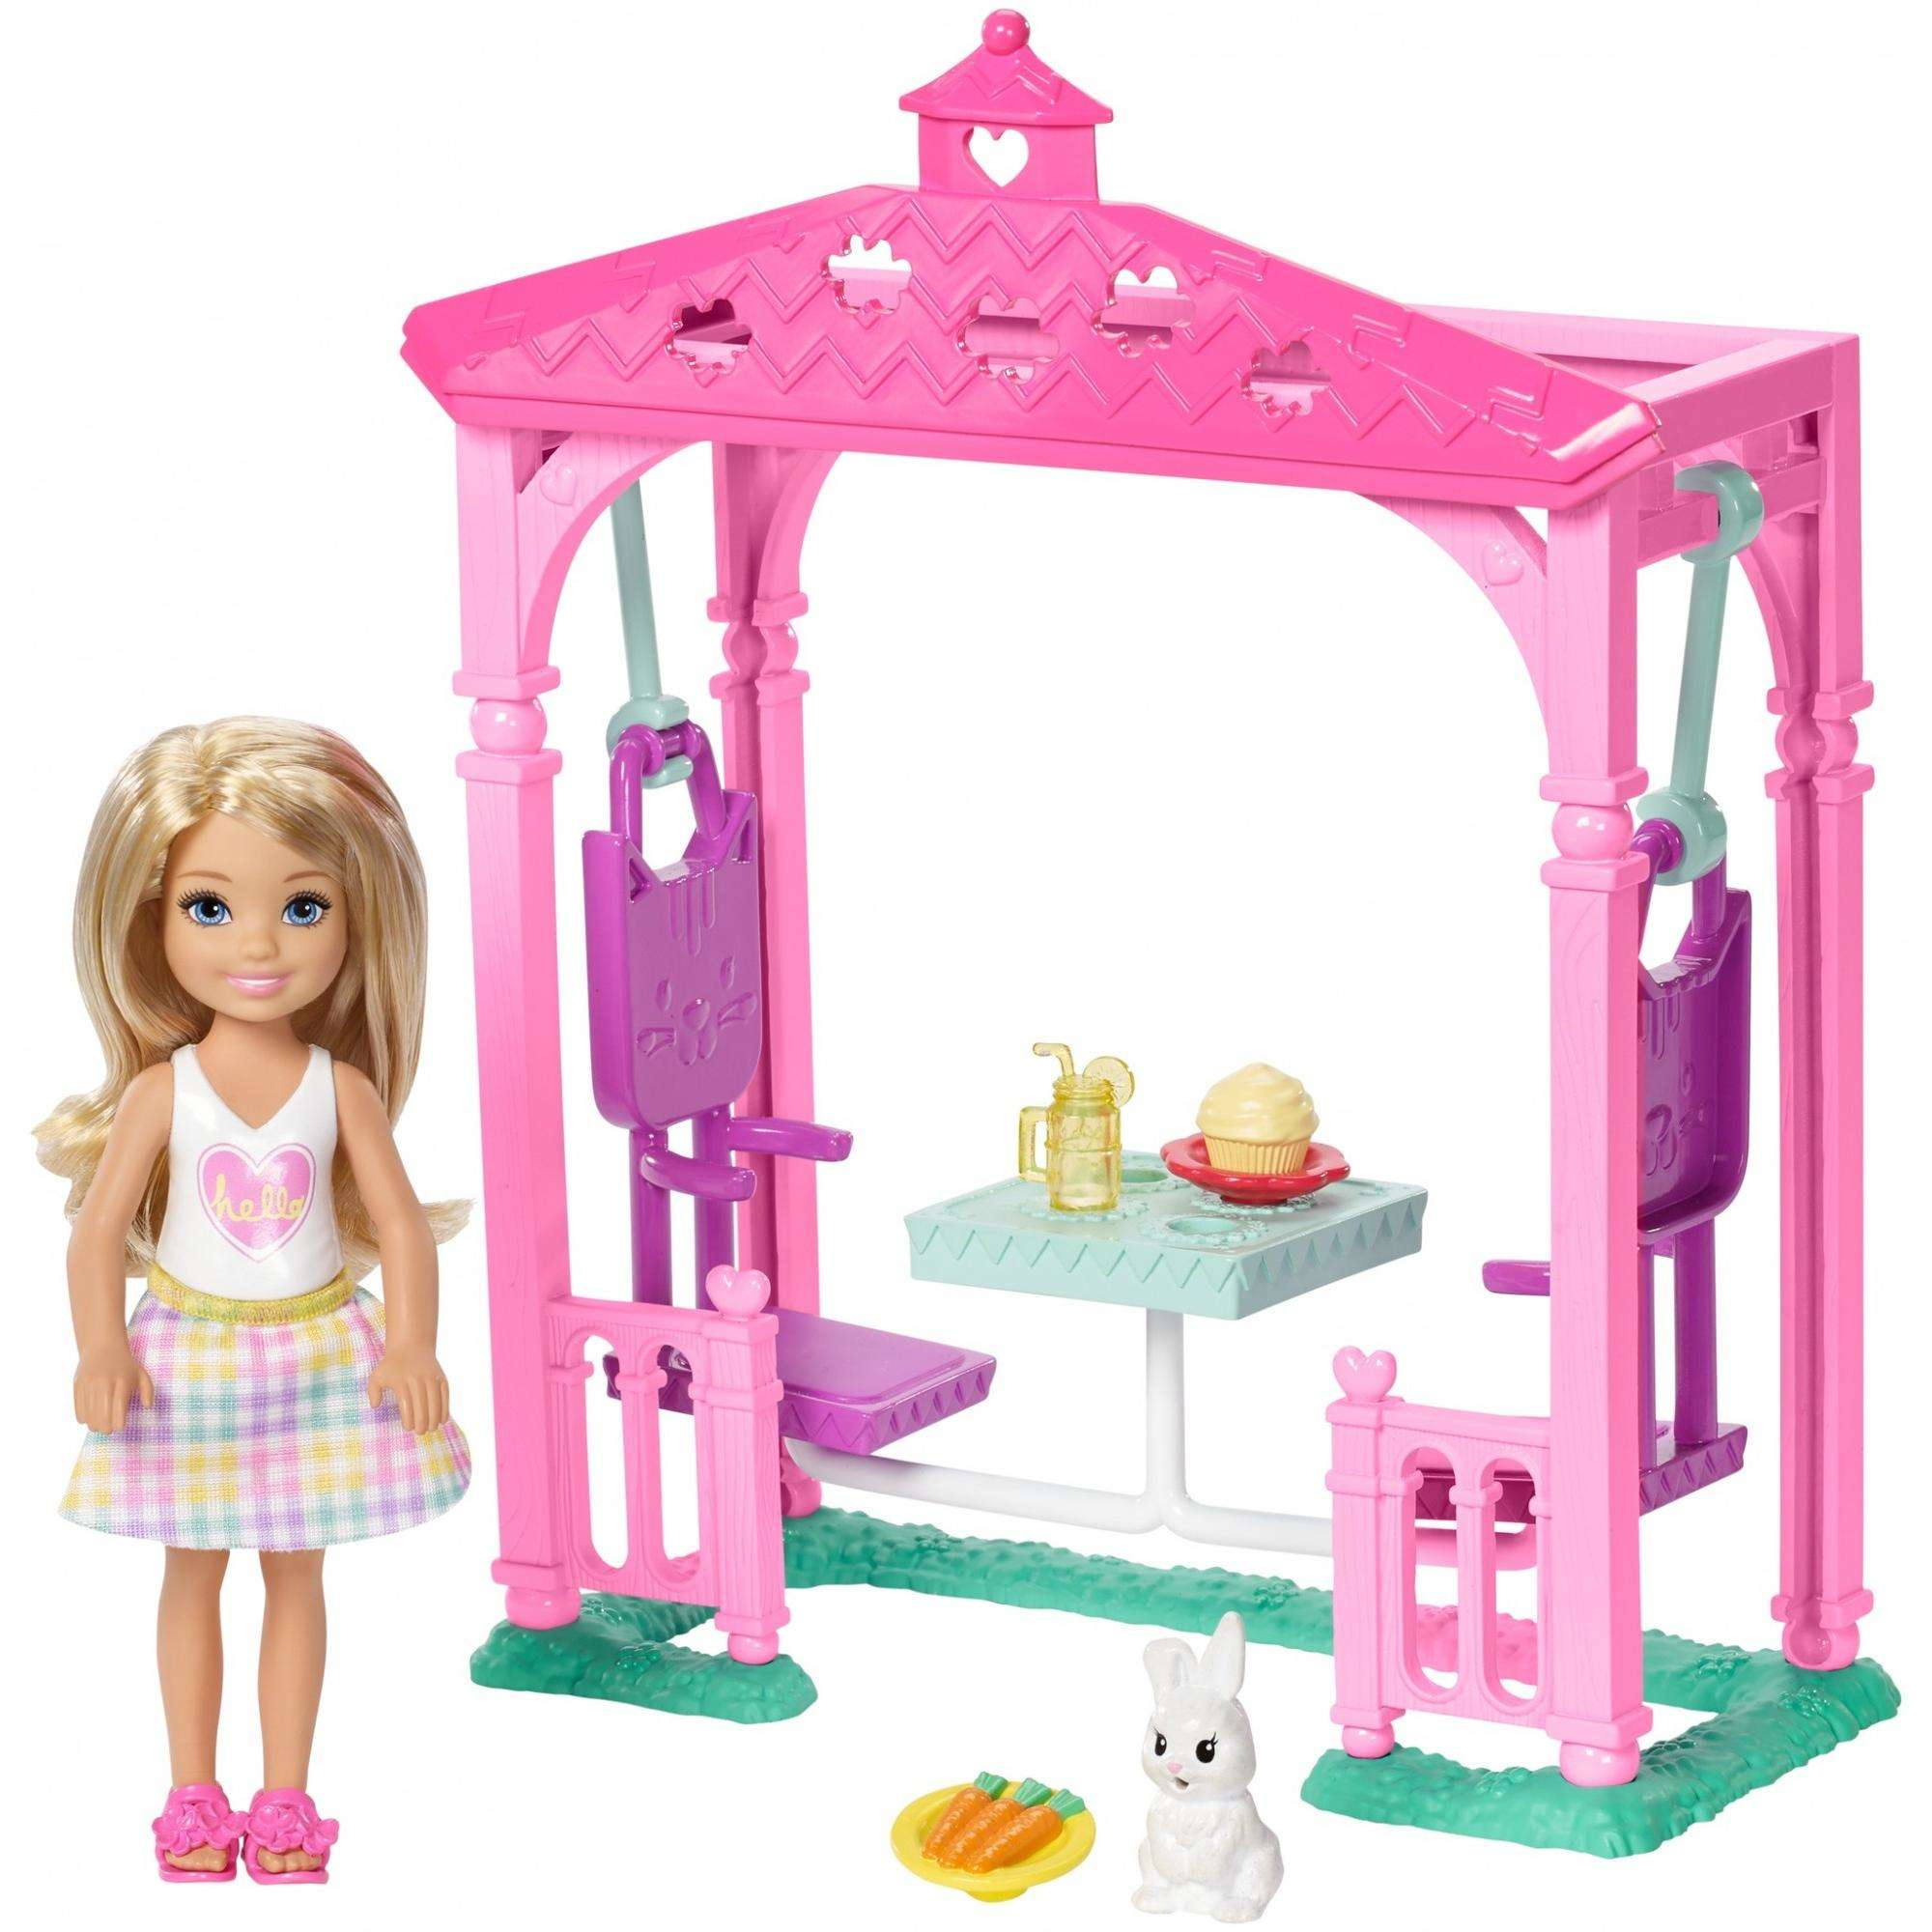 Barbie Club Chelsea Doll and Pet Figure Picnic Playset